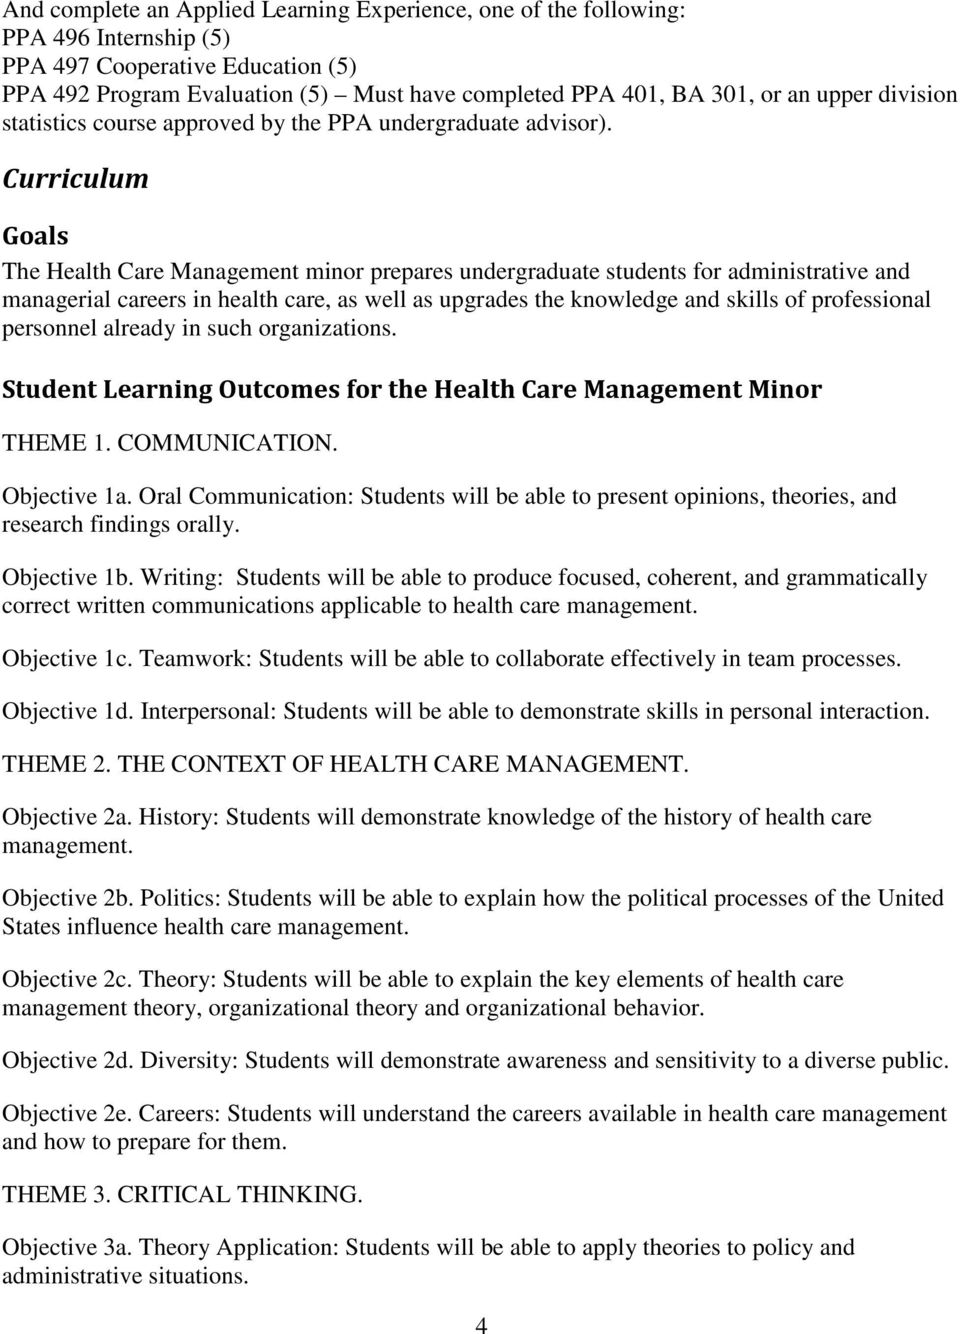 Curriculum Goals The Health Care Management minor prepares undergraduate students for administrative and managerial careers in health care, as well as upgrades the knowledge and skills of